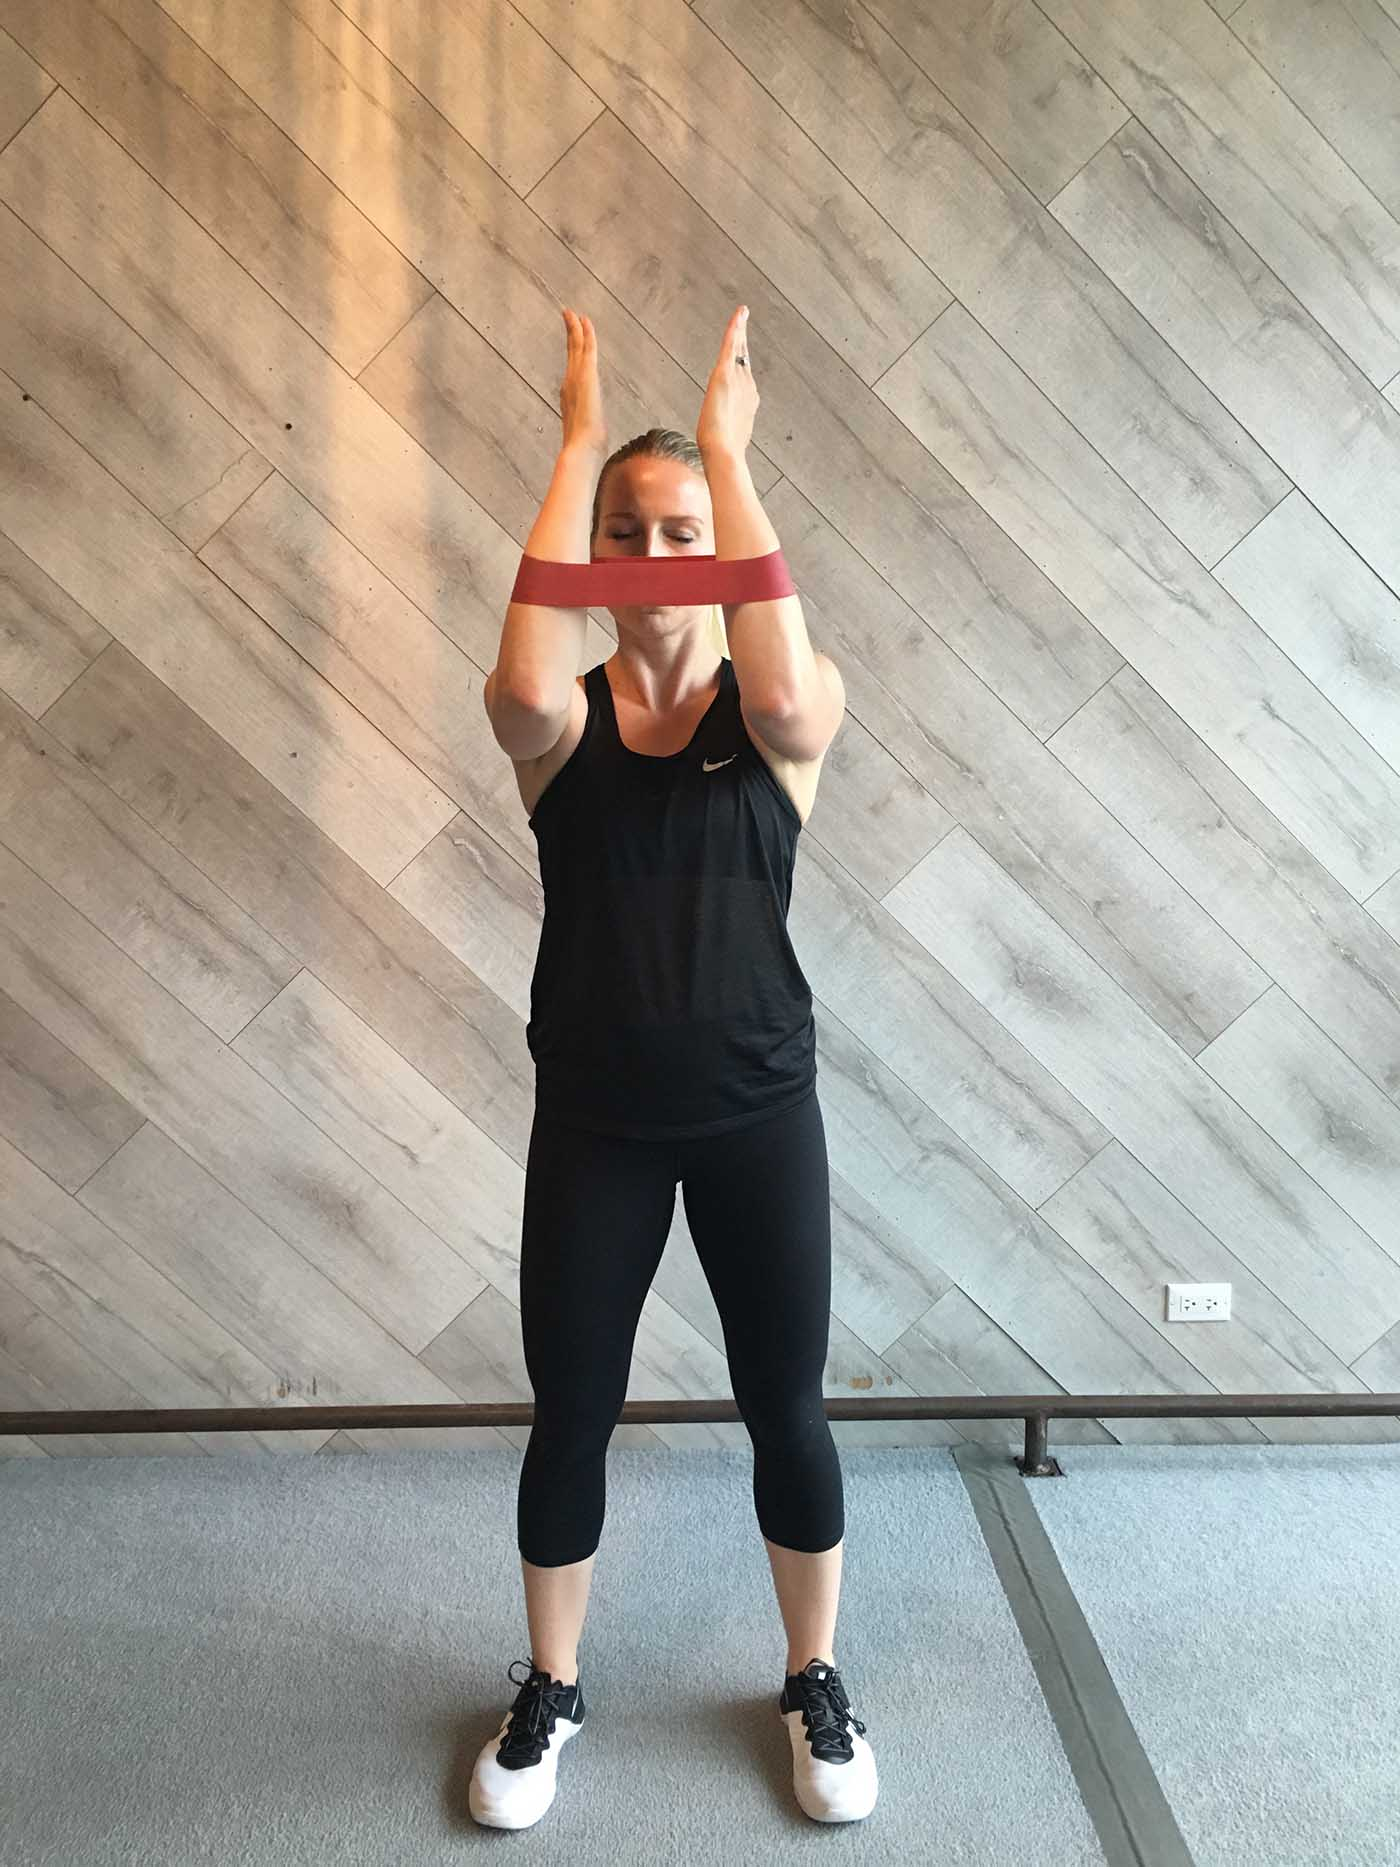 asweatlife_band-workout_90-degree-pulses_2